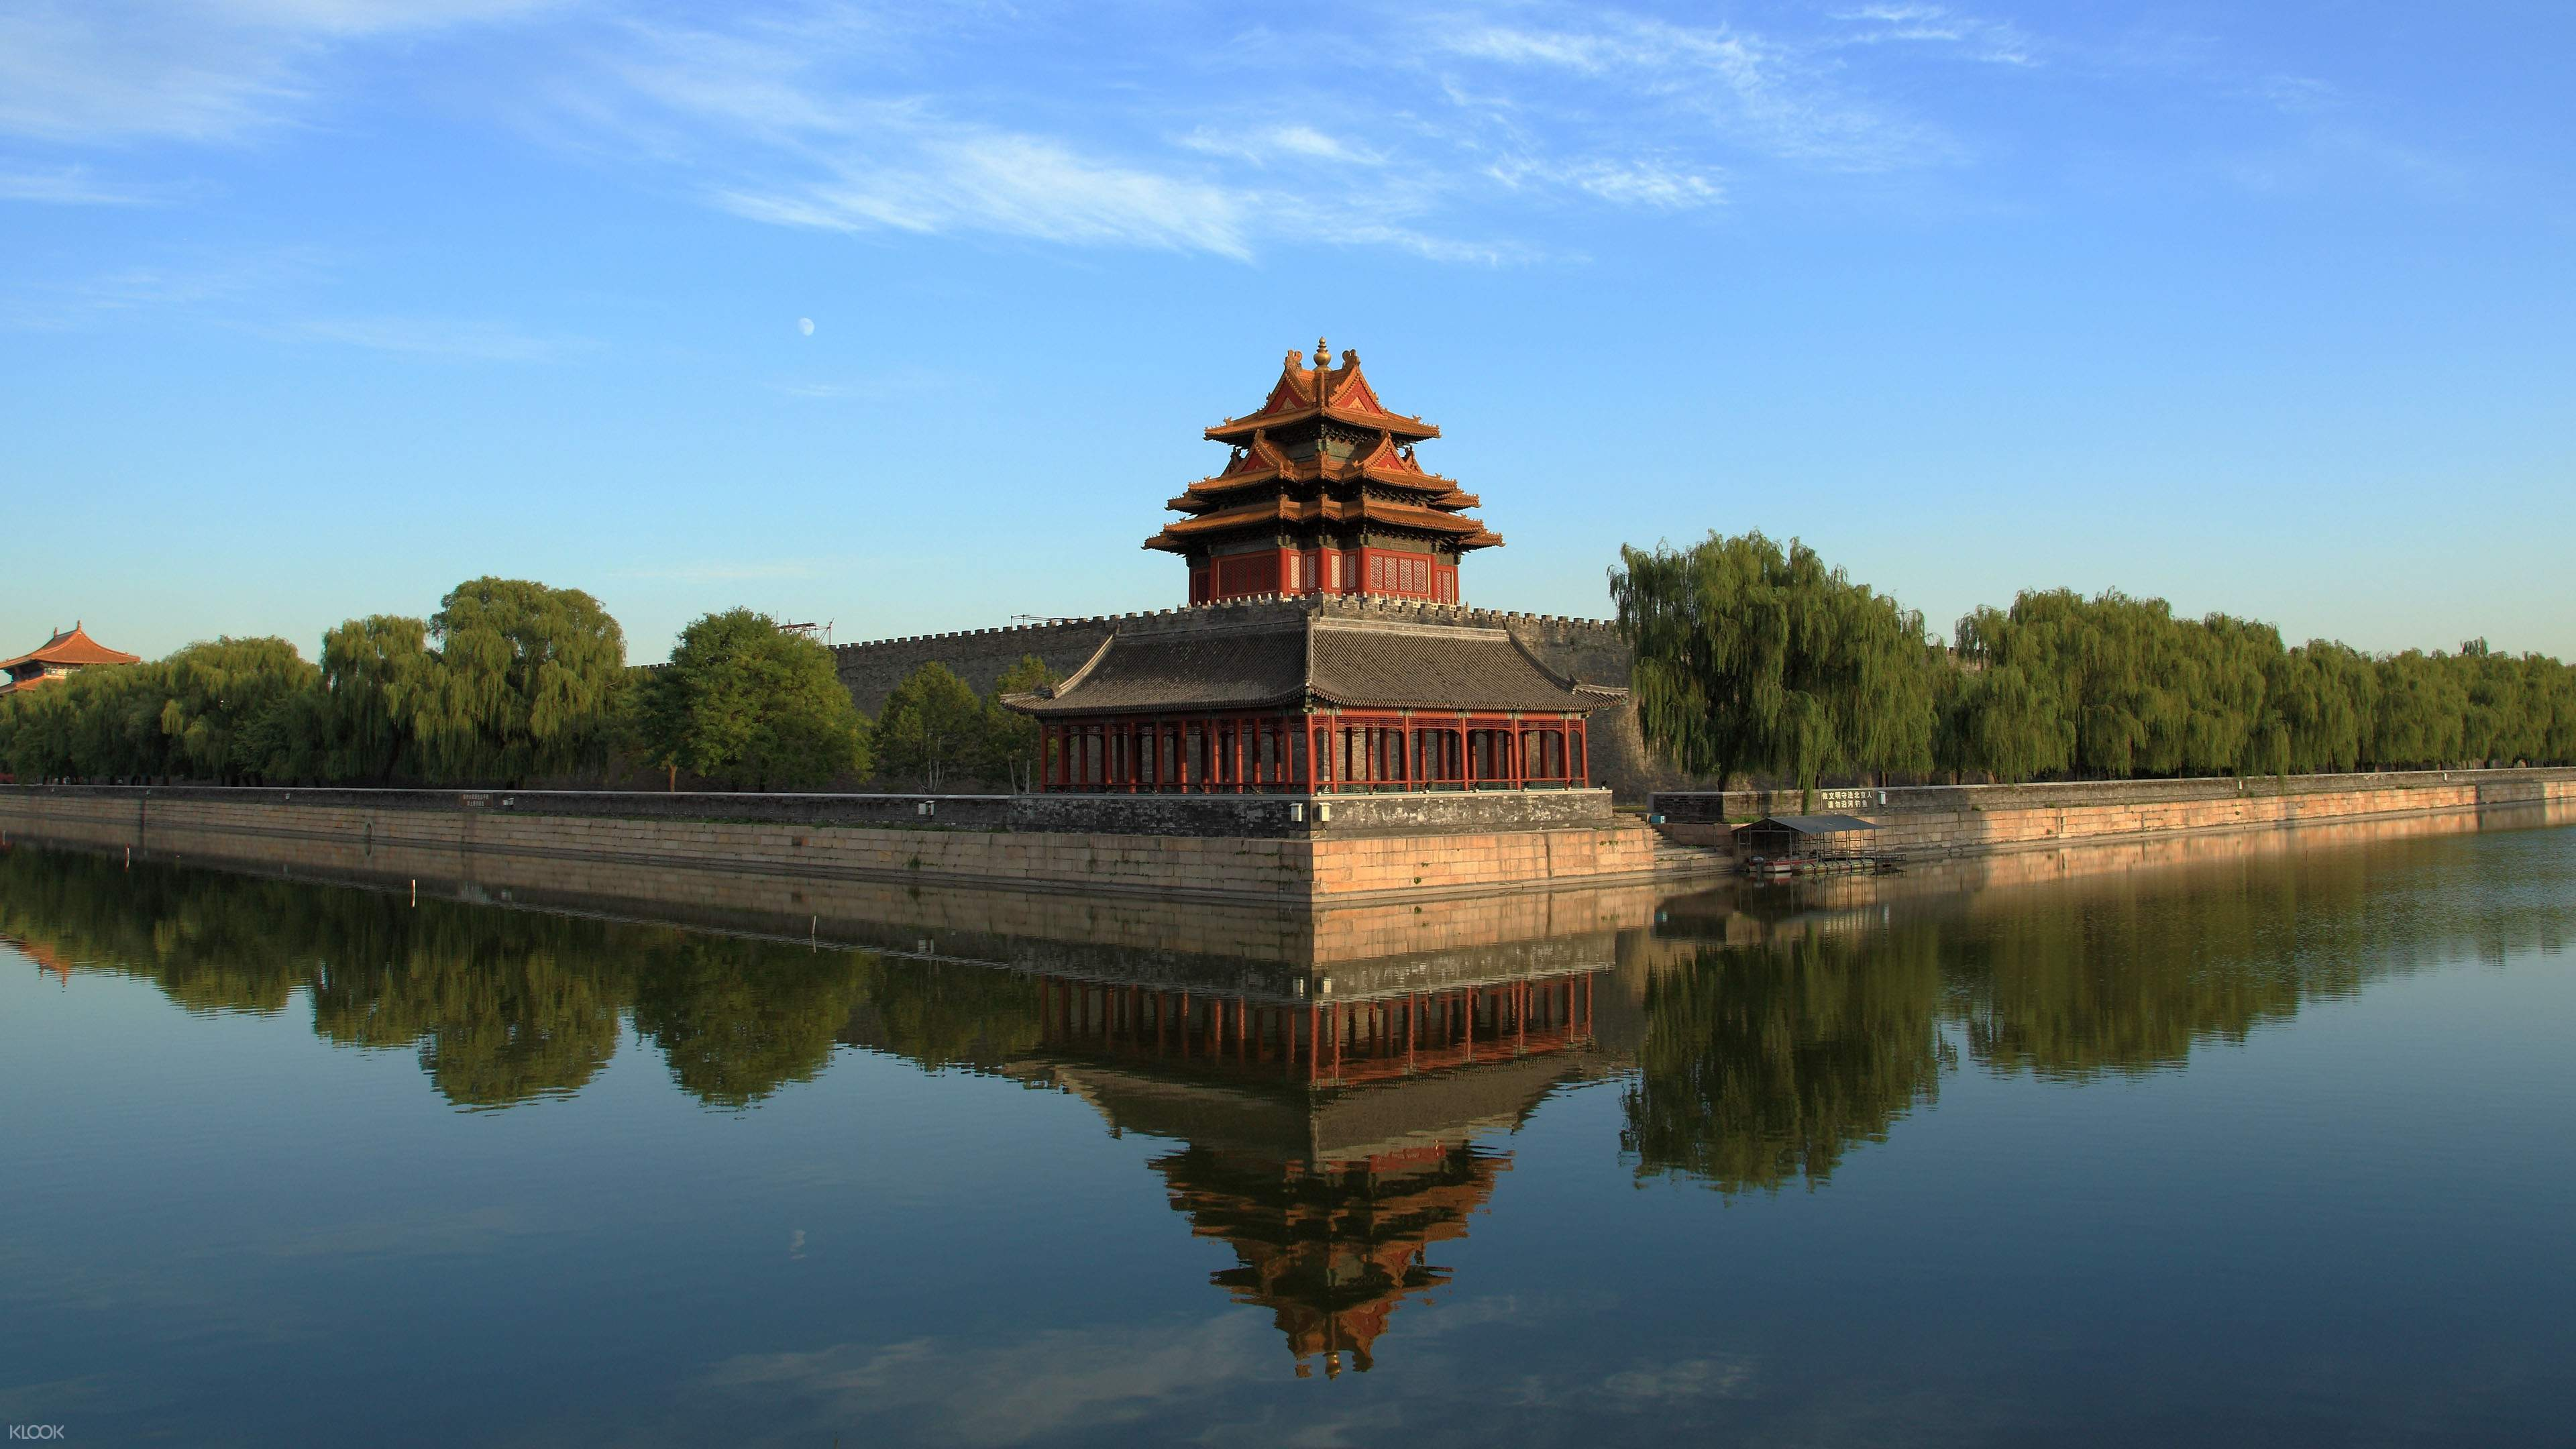 The Forbidden City & Badaling Sightseeing Helicopter Tour